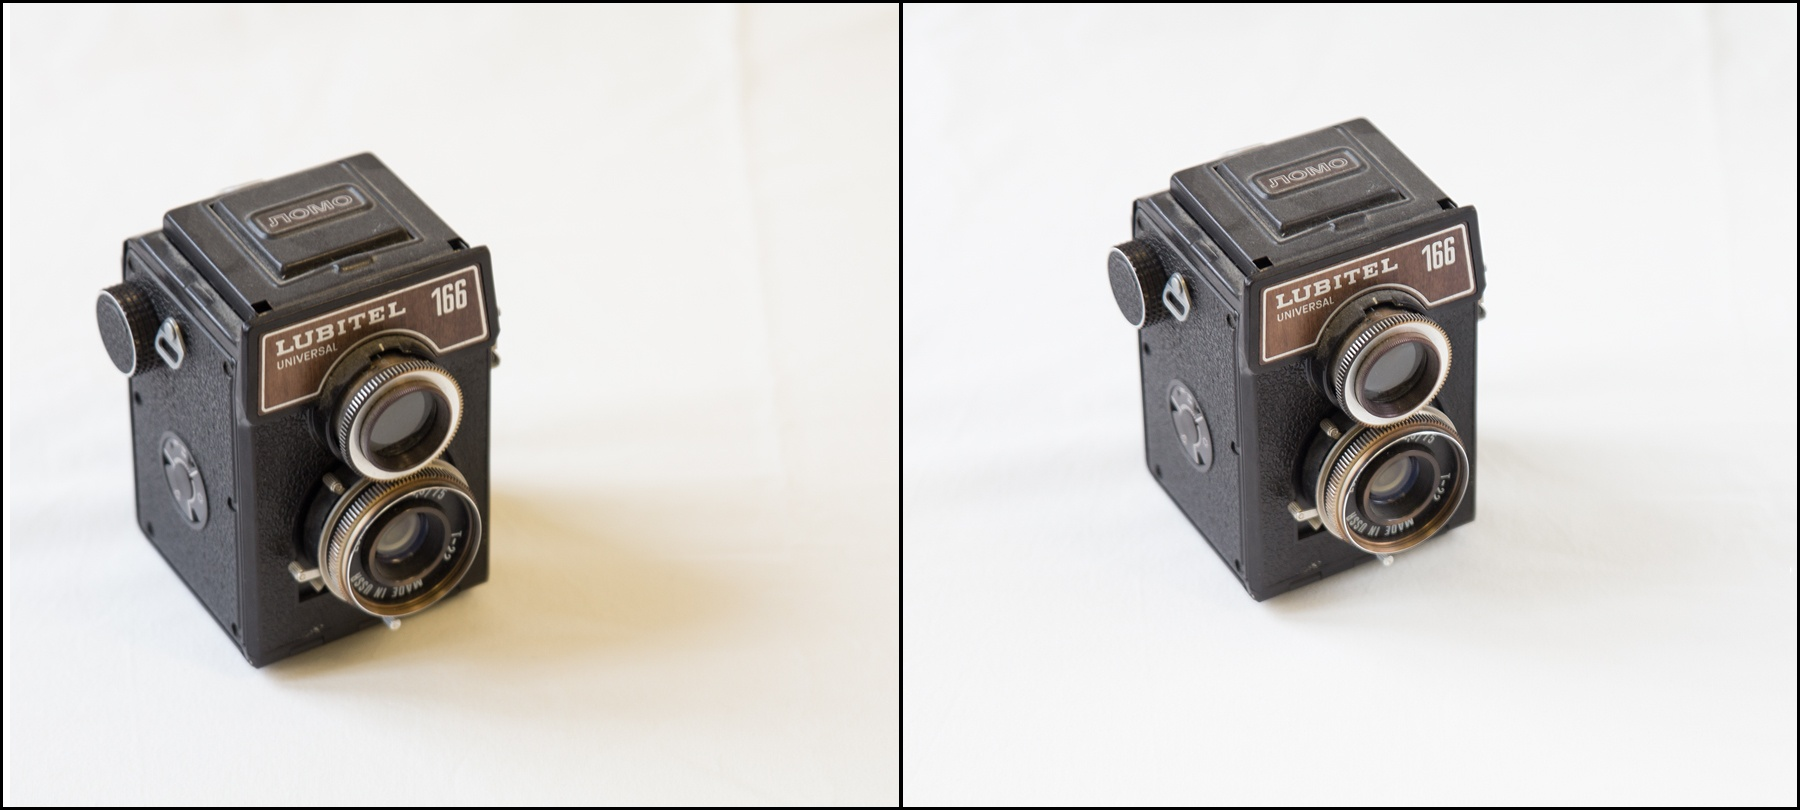 On the left a photo without a reflector, on the right the same photo with a reflector.